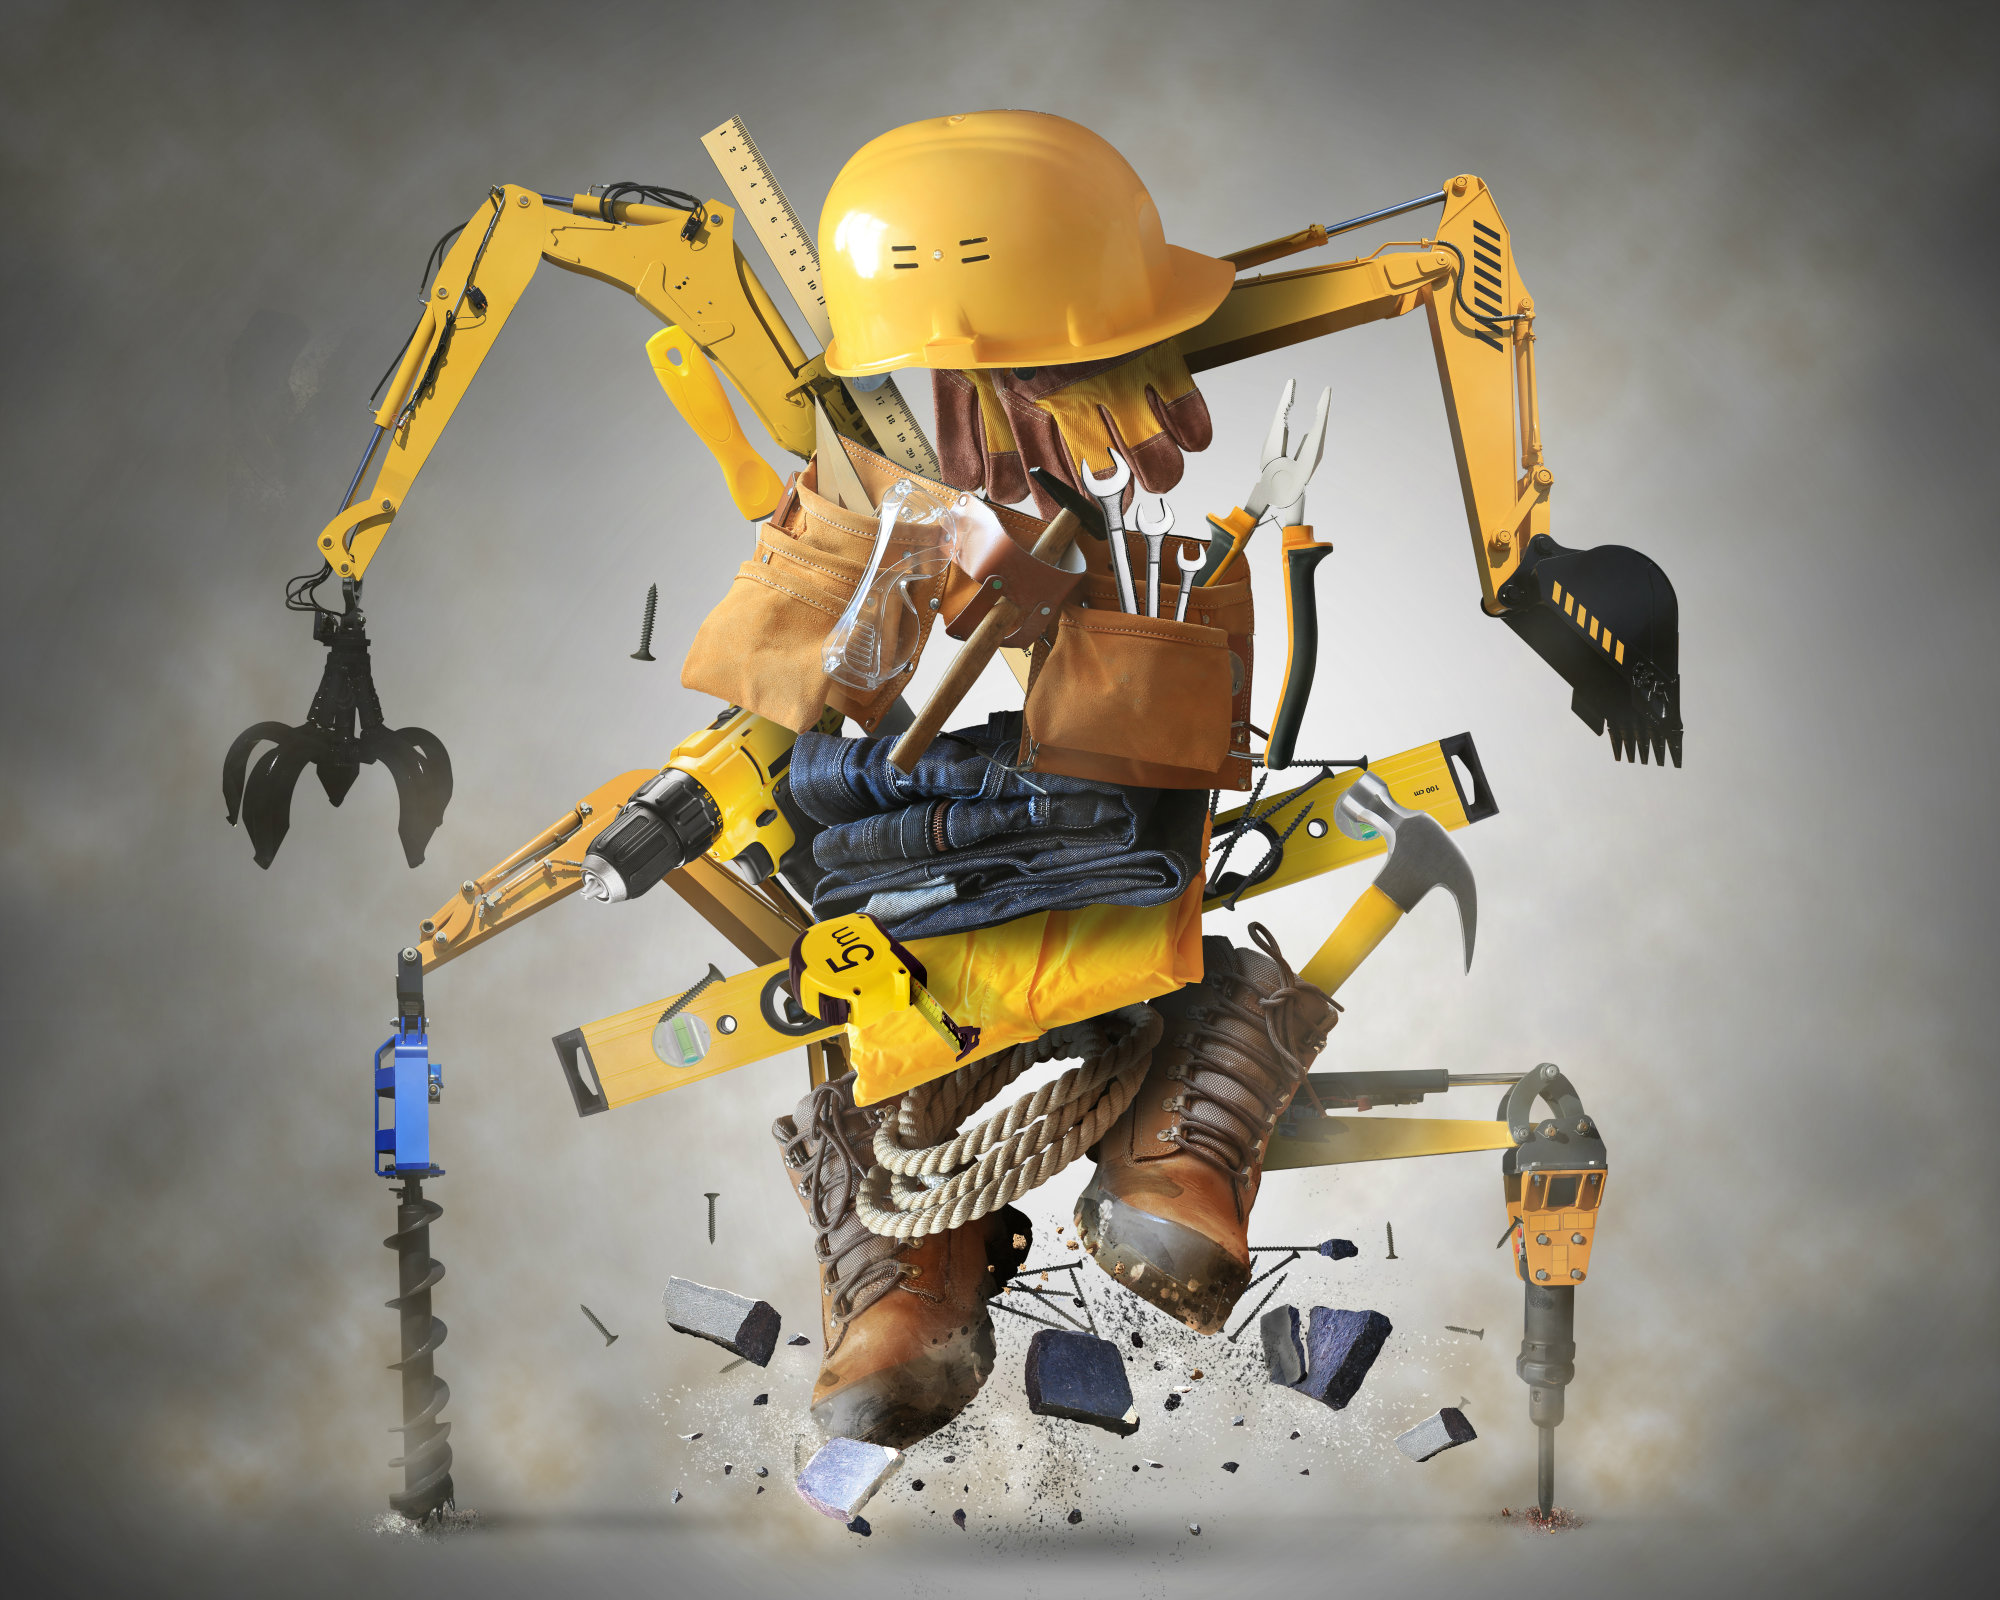 Bionic Construction Workers May Enter Jobsites Soon